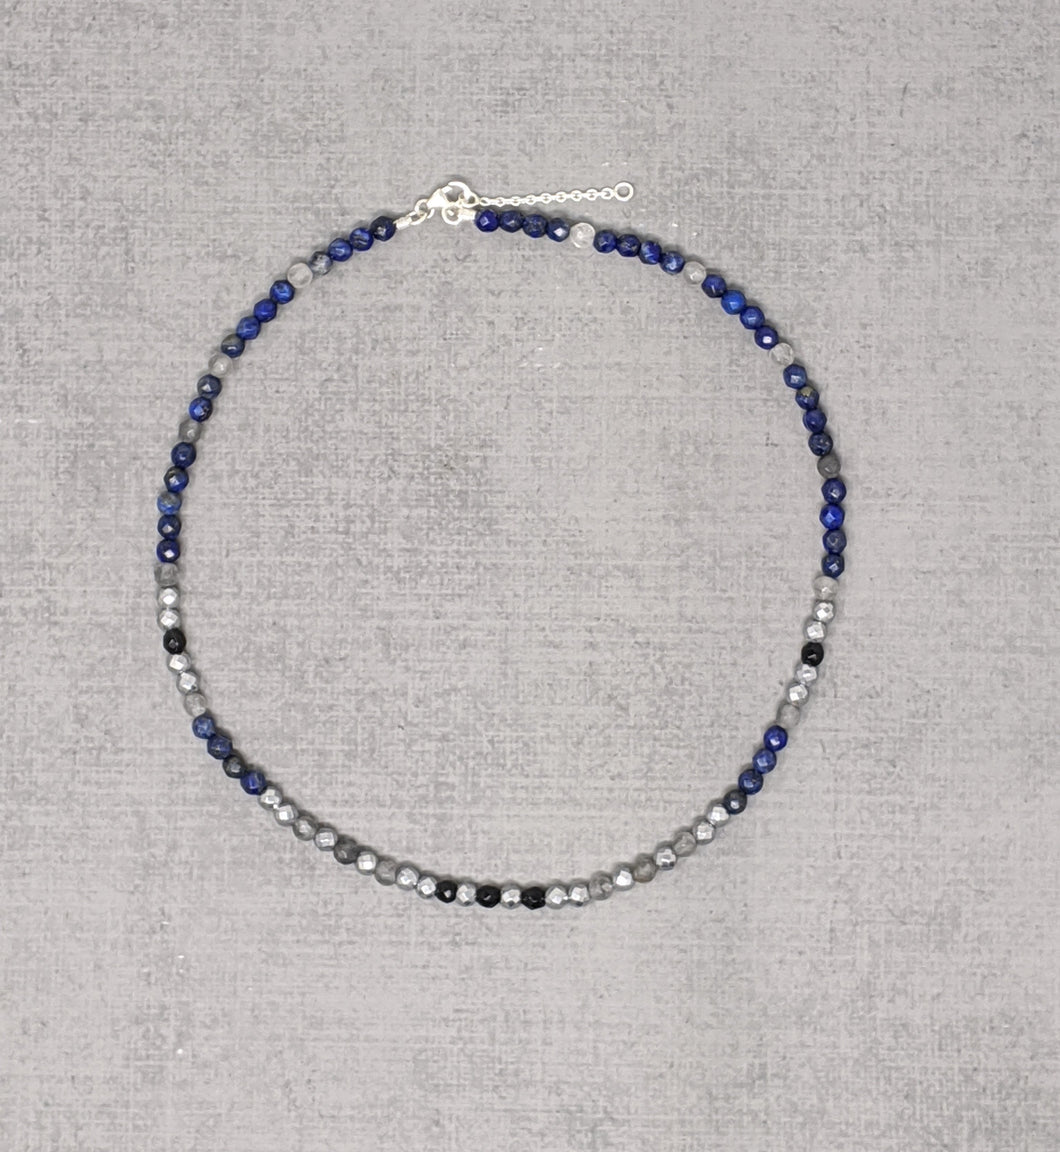 Sterling silver necklace with lapis, onyx, cloud quartz, and hematite